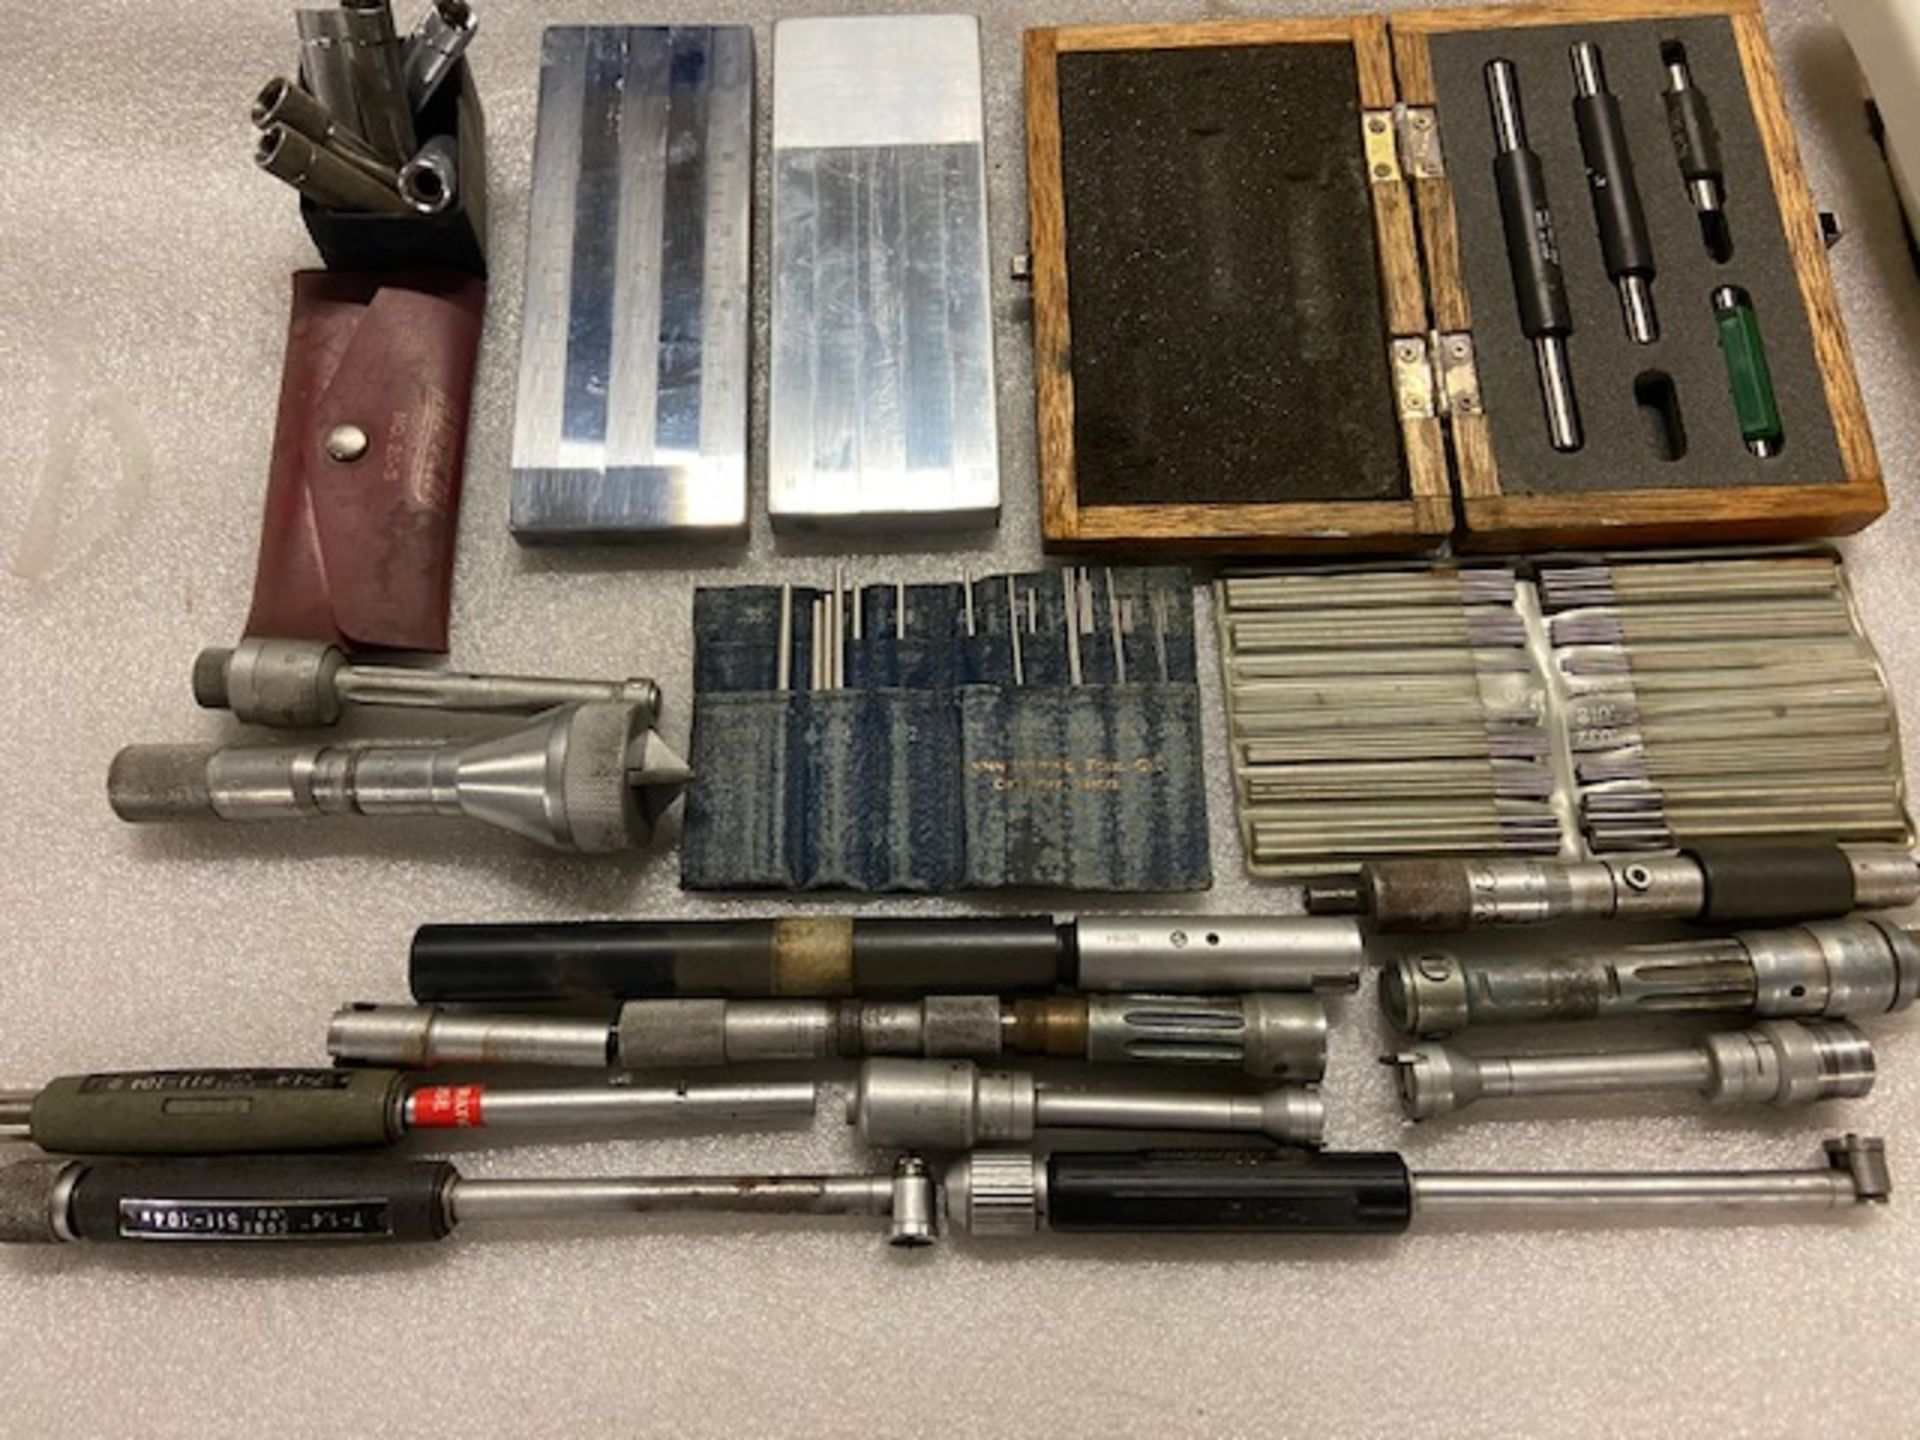 Large Lot of Mitutoyo and more Inspection Precision Equipment - Bore micrometers, standard